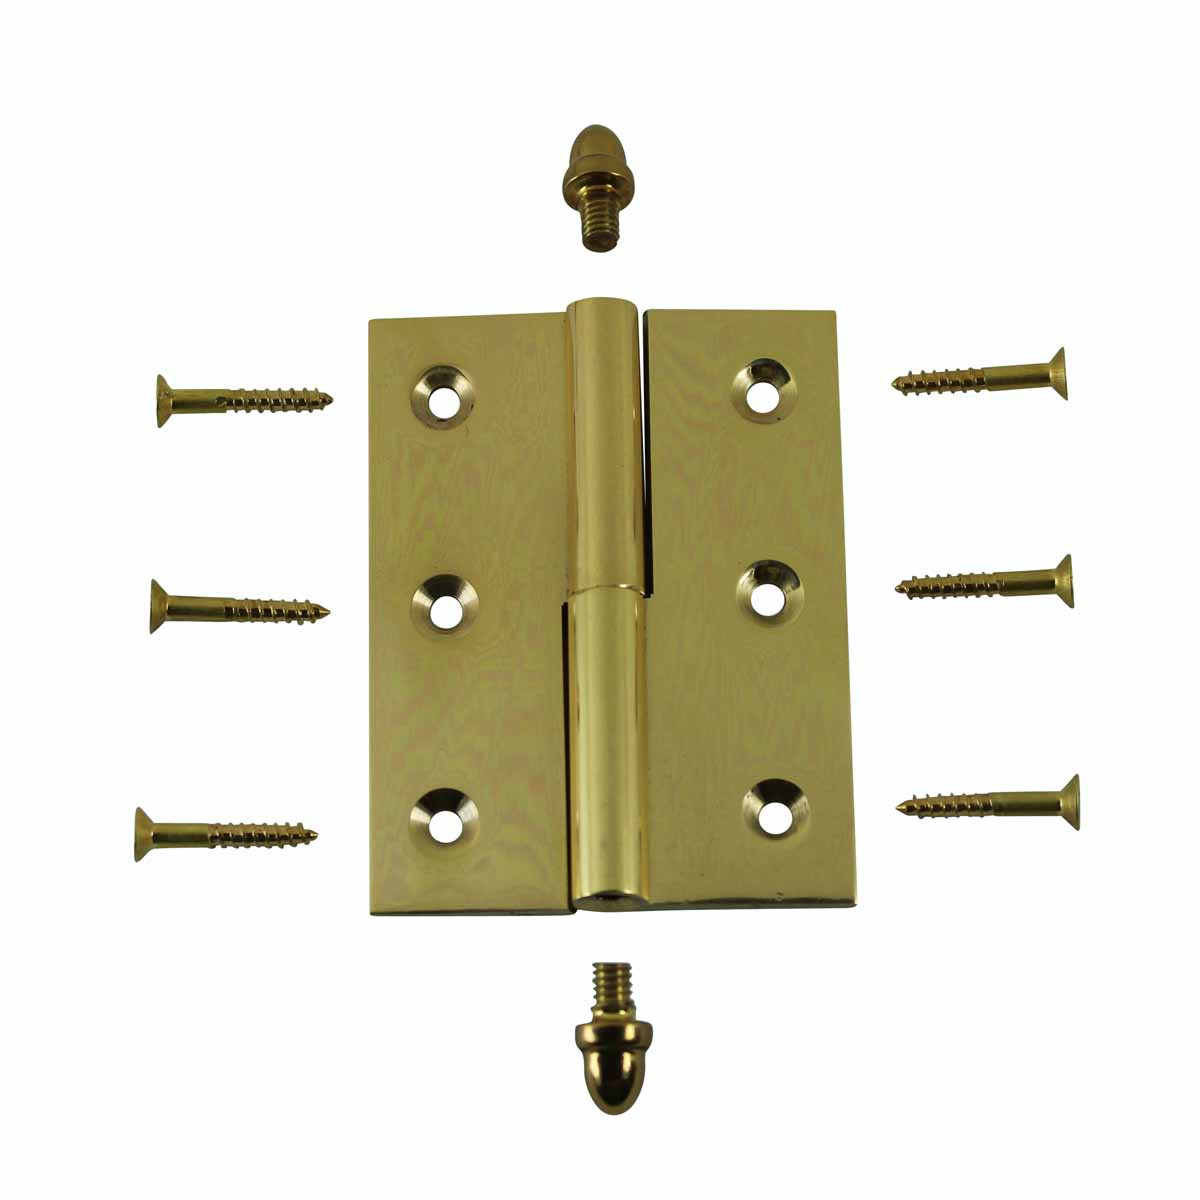 Lift Off Right Brass Cabinet Hinge 2in x 2.5in Helmet Tip Door Hinges Door Hinge Solid Brass Hinge